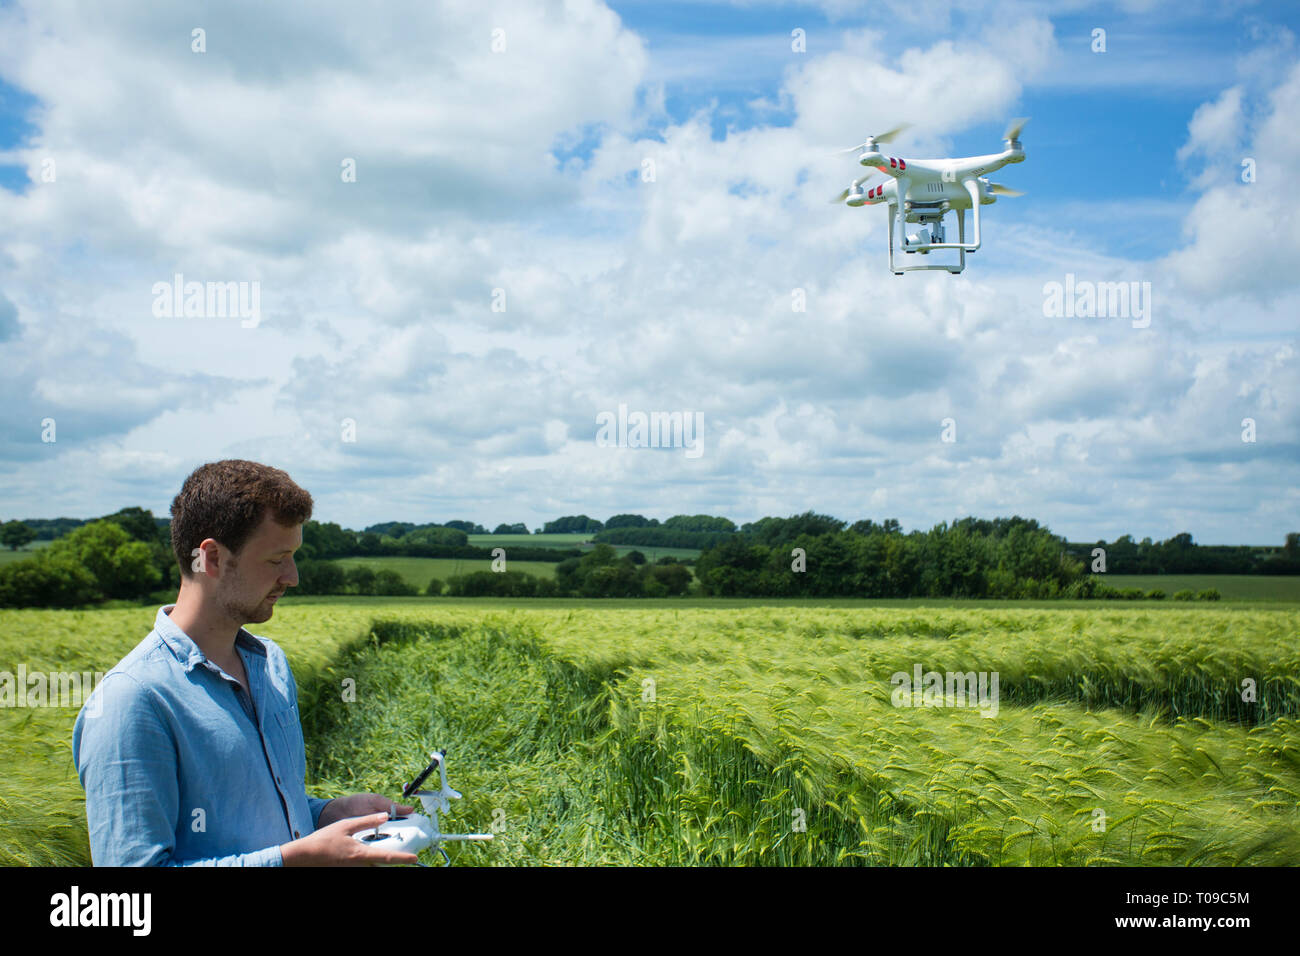 Great Britain, England, Wiltshire.  Man operating a drone in a crop circle. - Stock Image